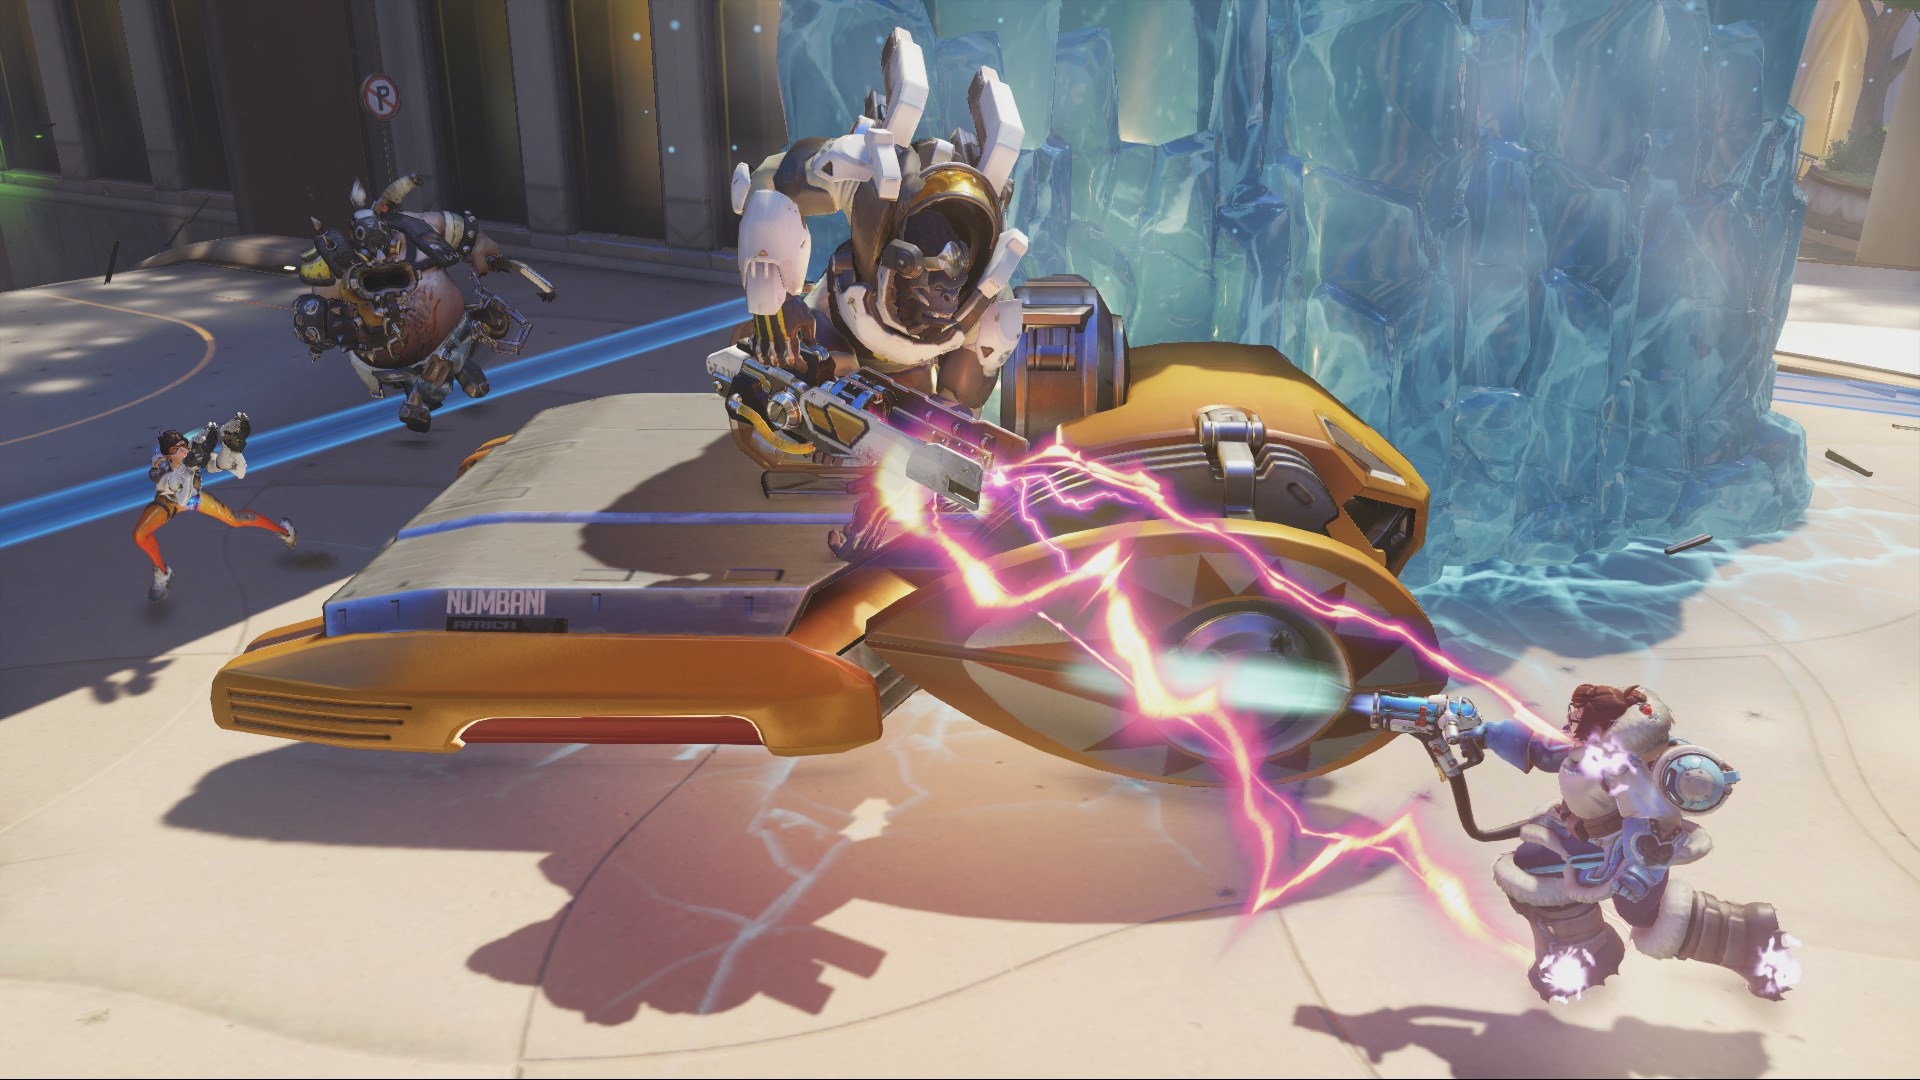 Overwatch' Review: So Good That it Gets Disappointing